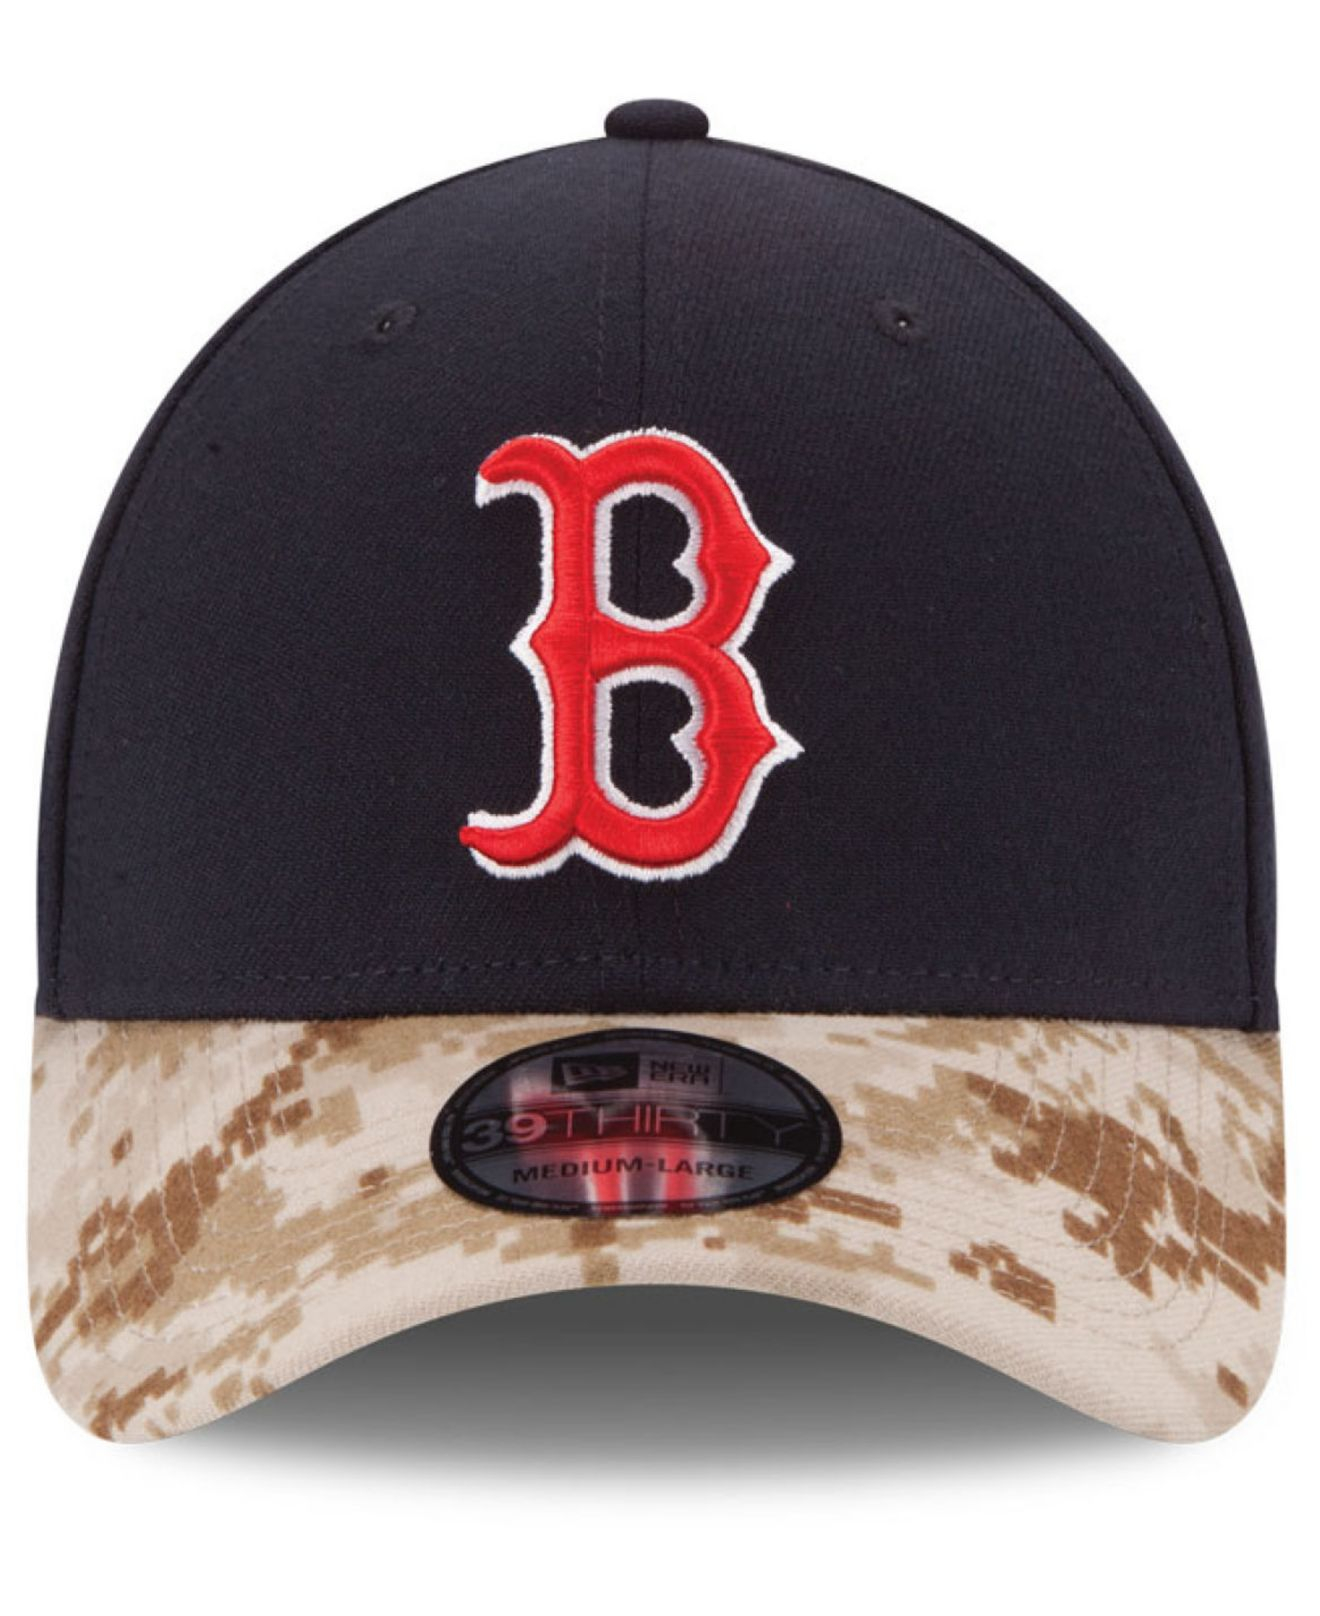 the best attitude b752f f6383 ... new era green 2017 memorial day 39thirty flex hat 6d8a0 fc5ad  cheapest  lyst ktz boston red sox memorial day 39thirty cap in blue for men 62c48  5ba31